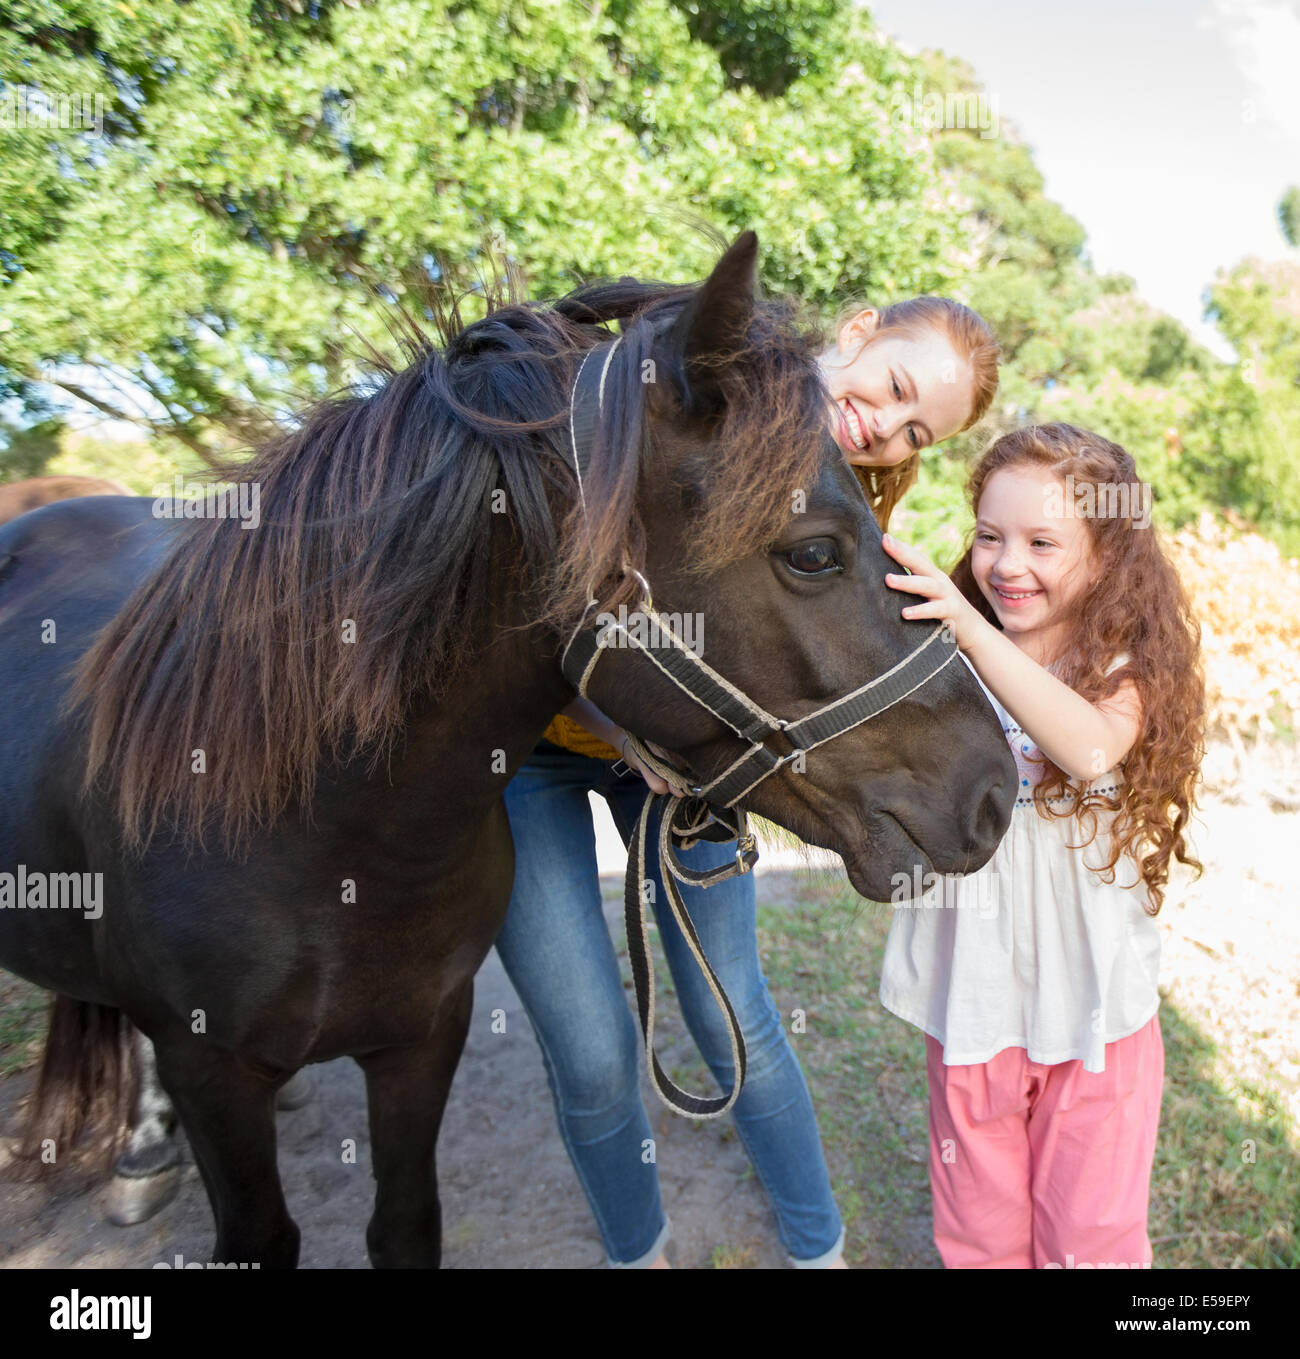 Mother and daughter petting horse outdoors - Stock Image